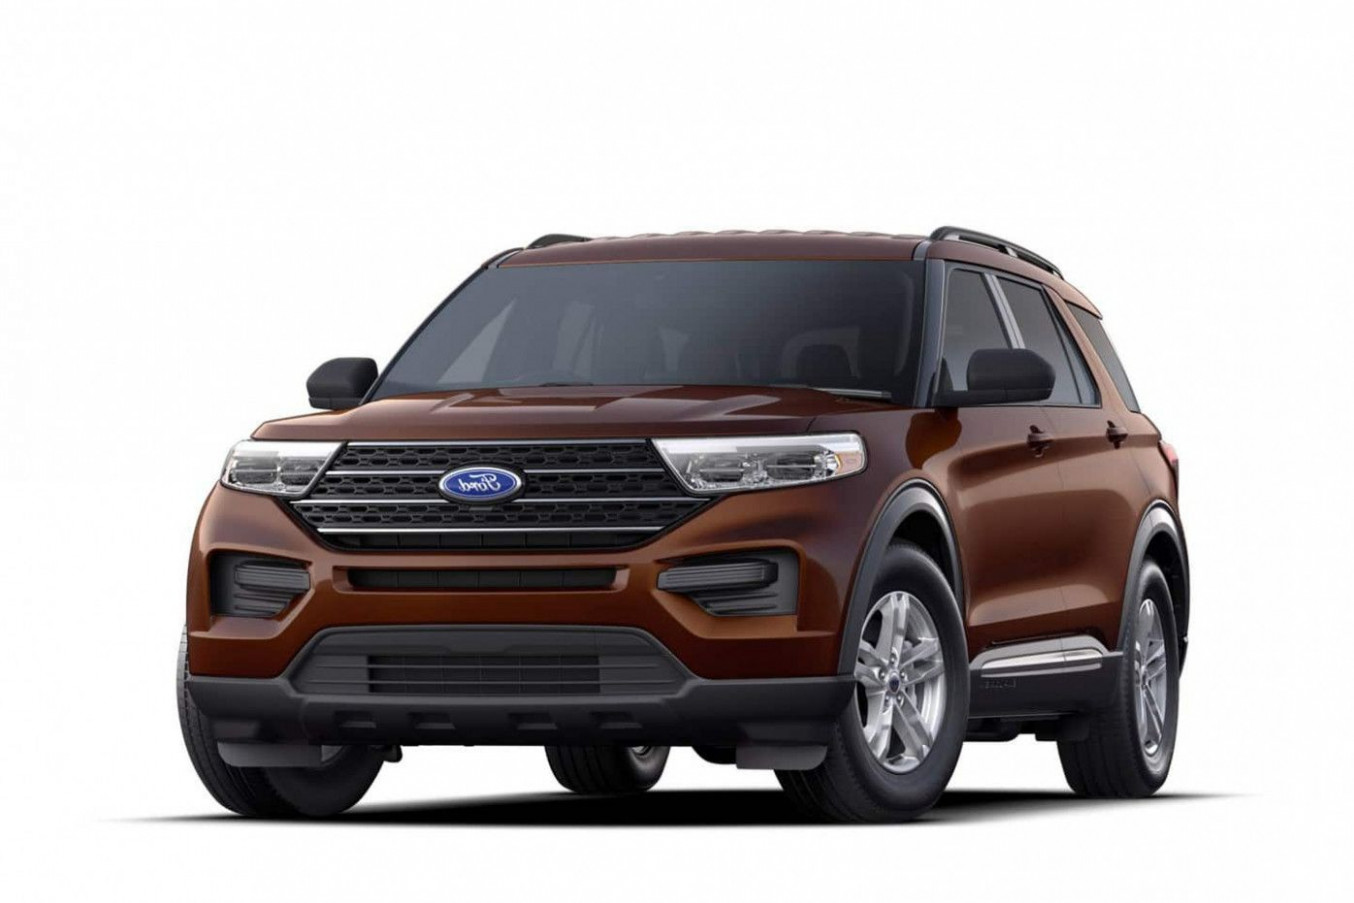 Ten Common Mistakes Everyone Makes In Ford Ofertas | Suv models ...